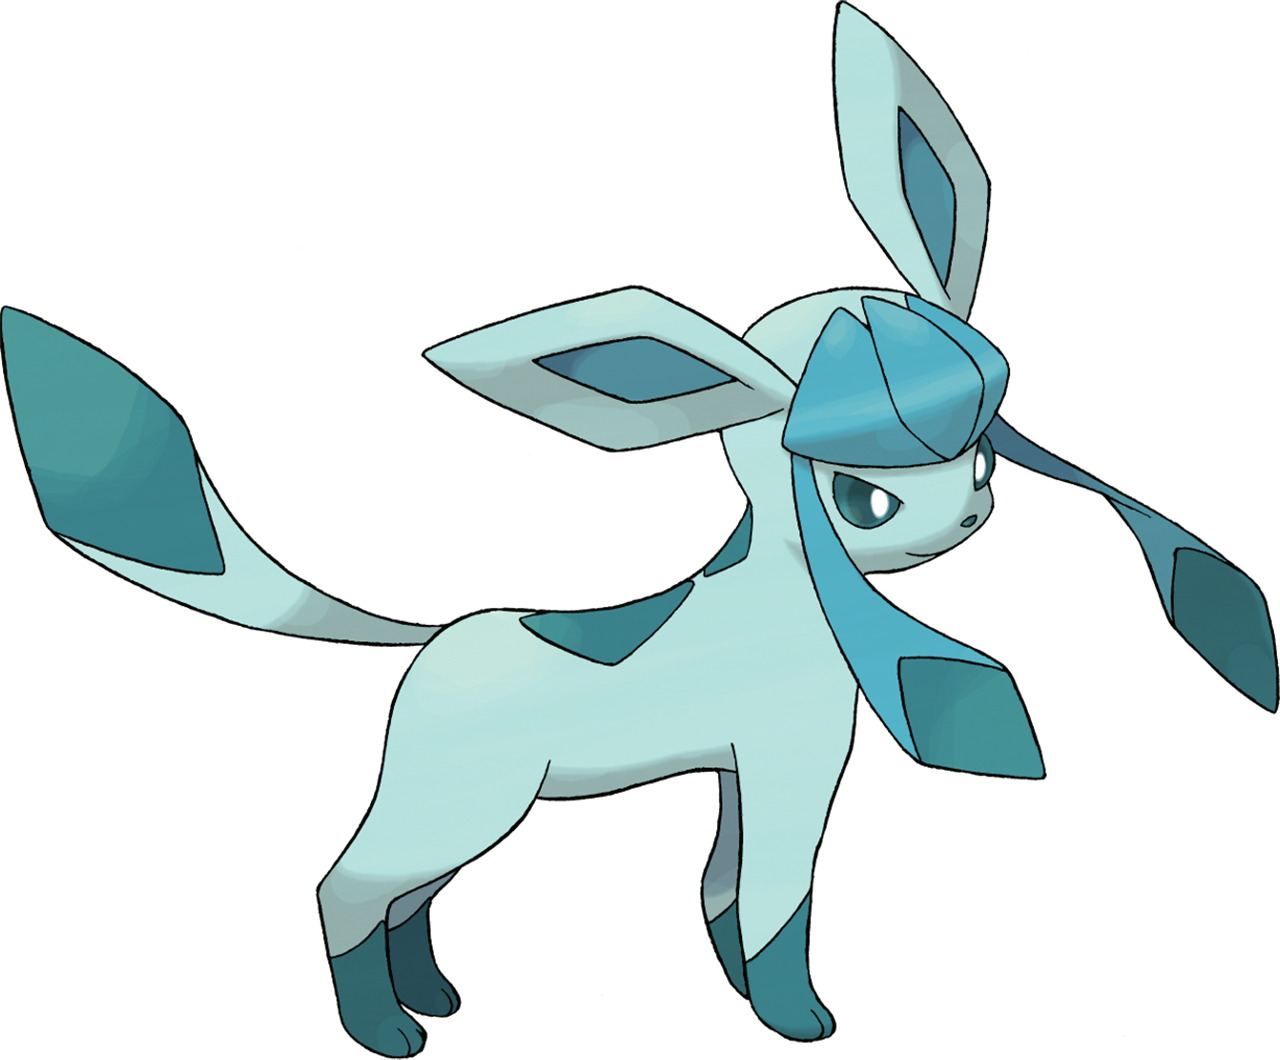 About your character: Sugimori_471